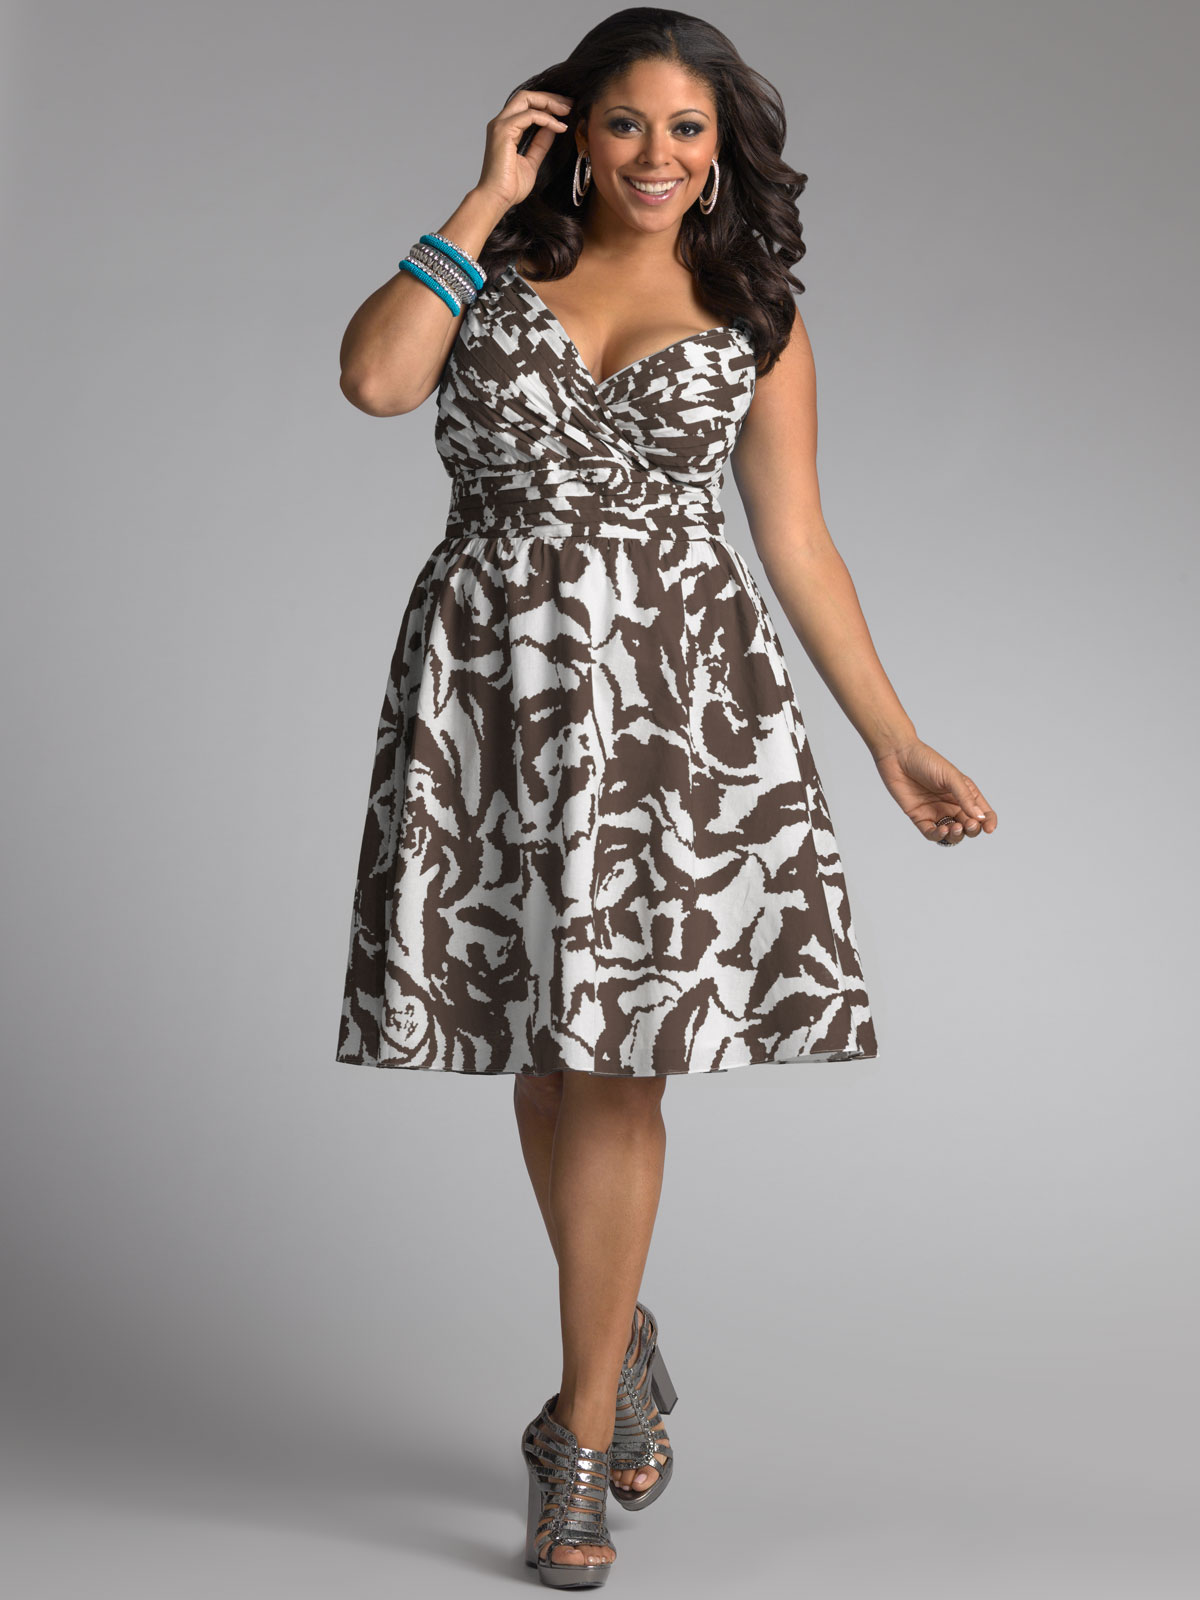 Dresses for plus size women awesome dresses for large women photos plus size clothing PVRPSKZ